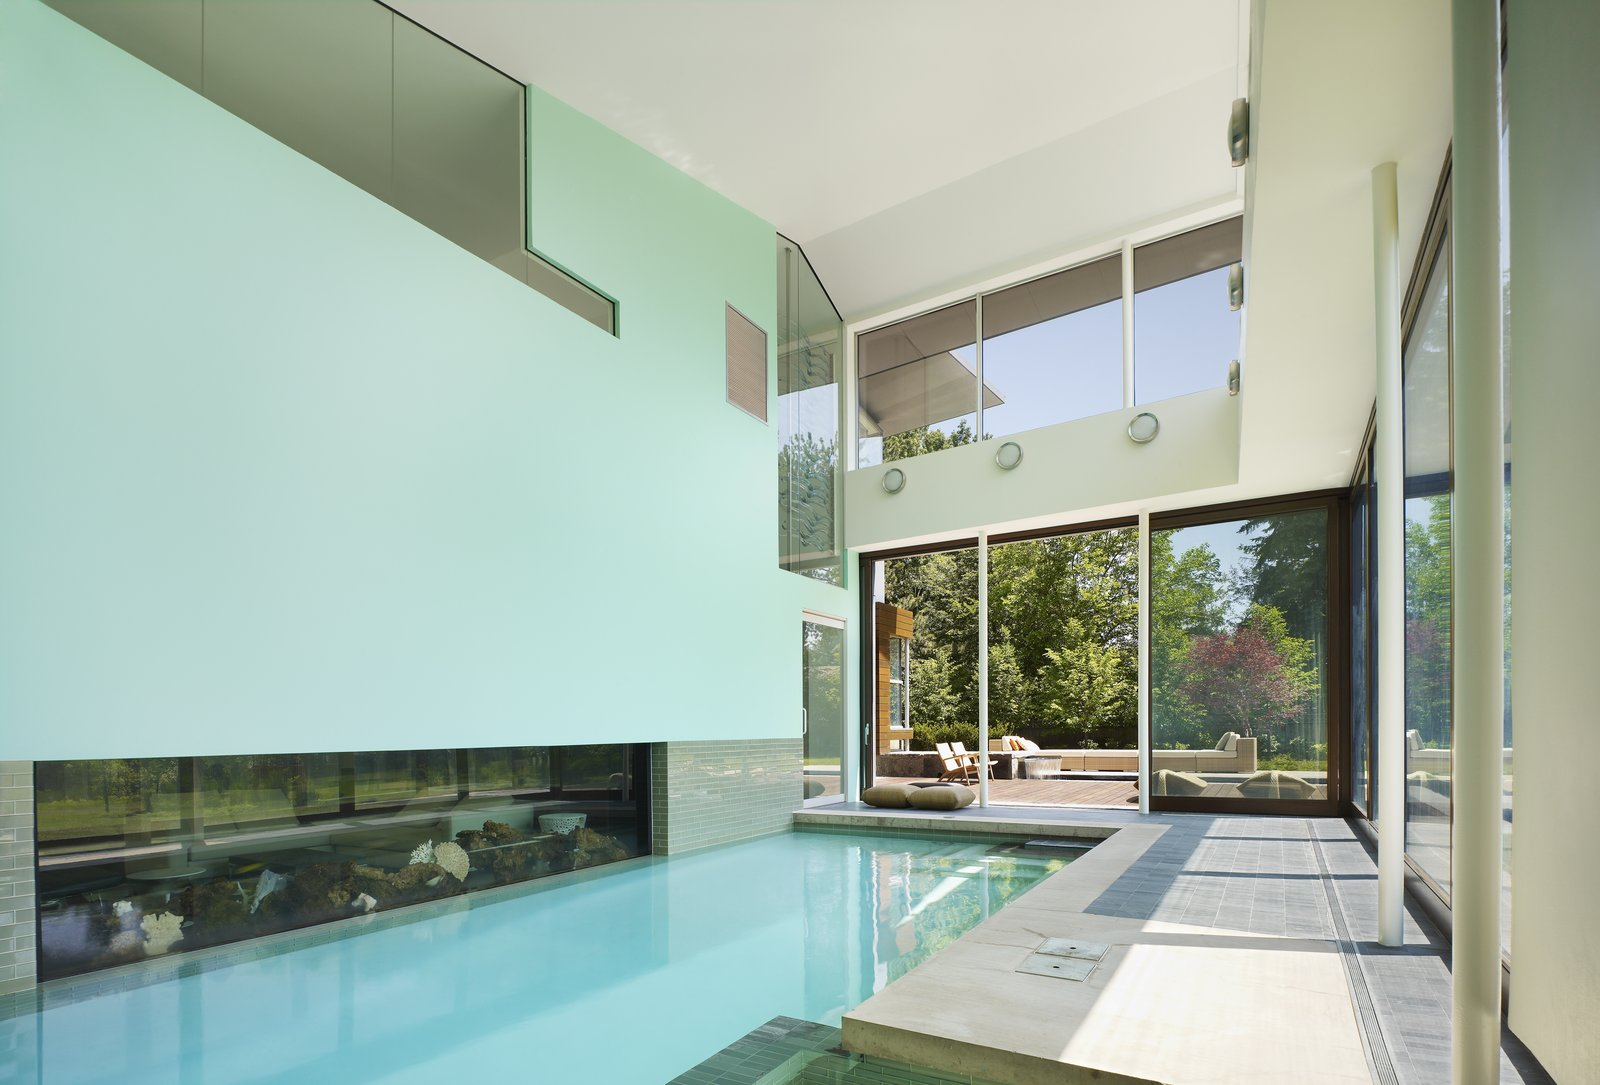 The indoor pool area opens up to the outdoor patio for year round swimming in the cold Toronto climate.  An aquarium is nestled next to the interior pool wall.   Davis Residence by Abramson Teiger Architects